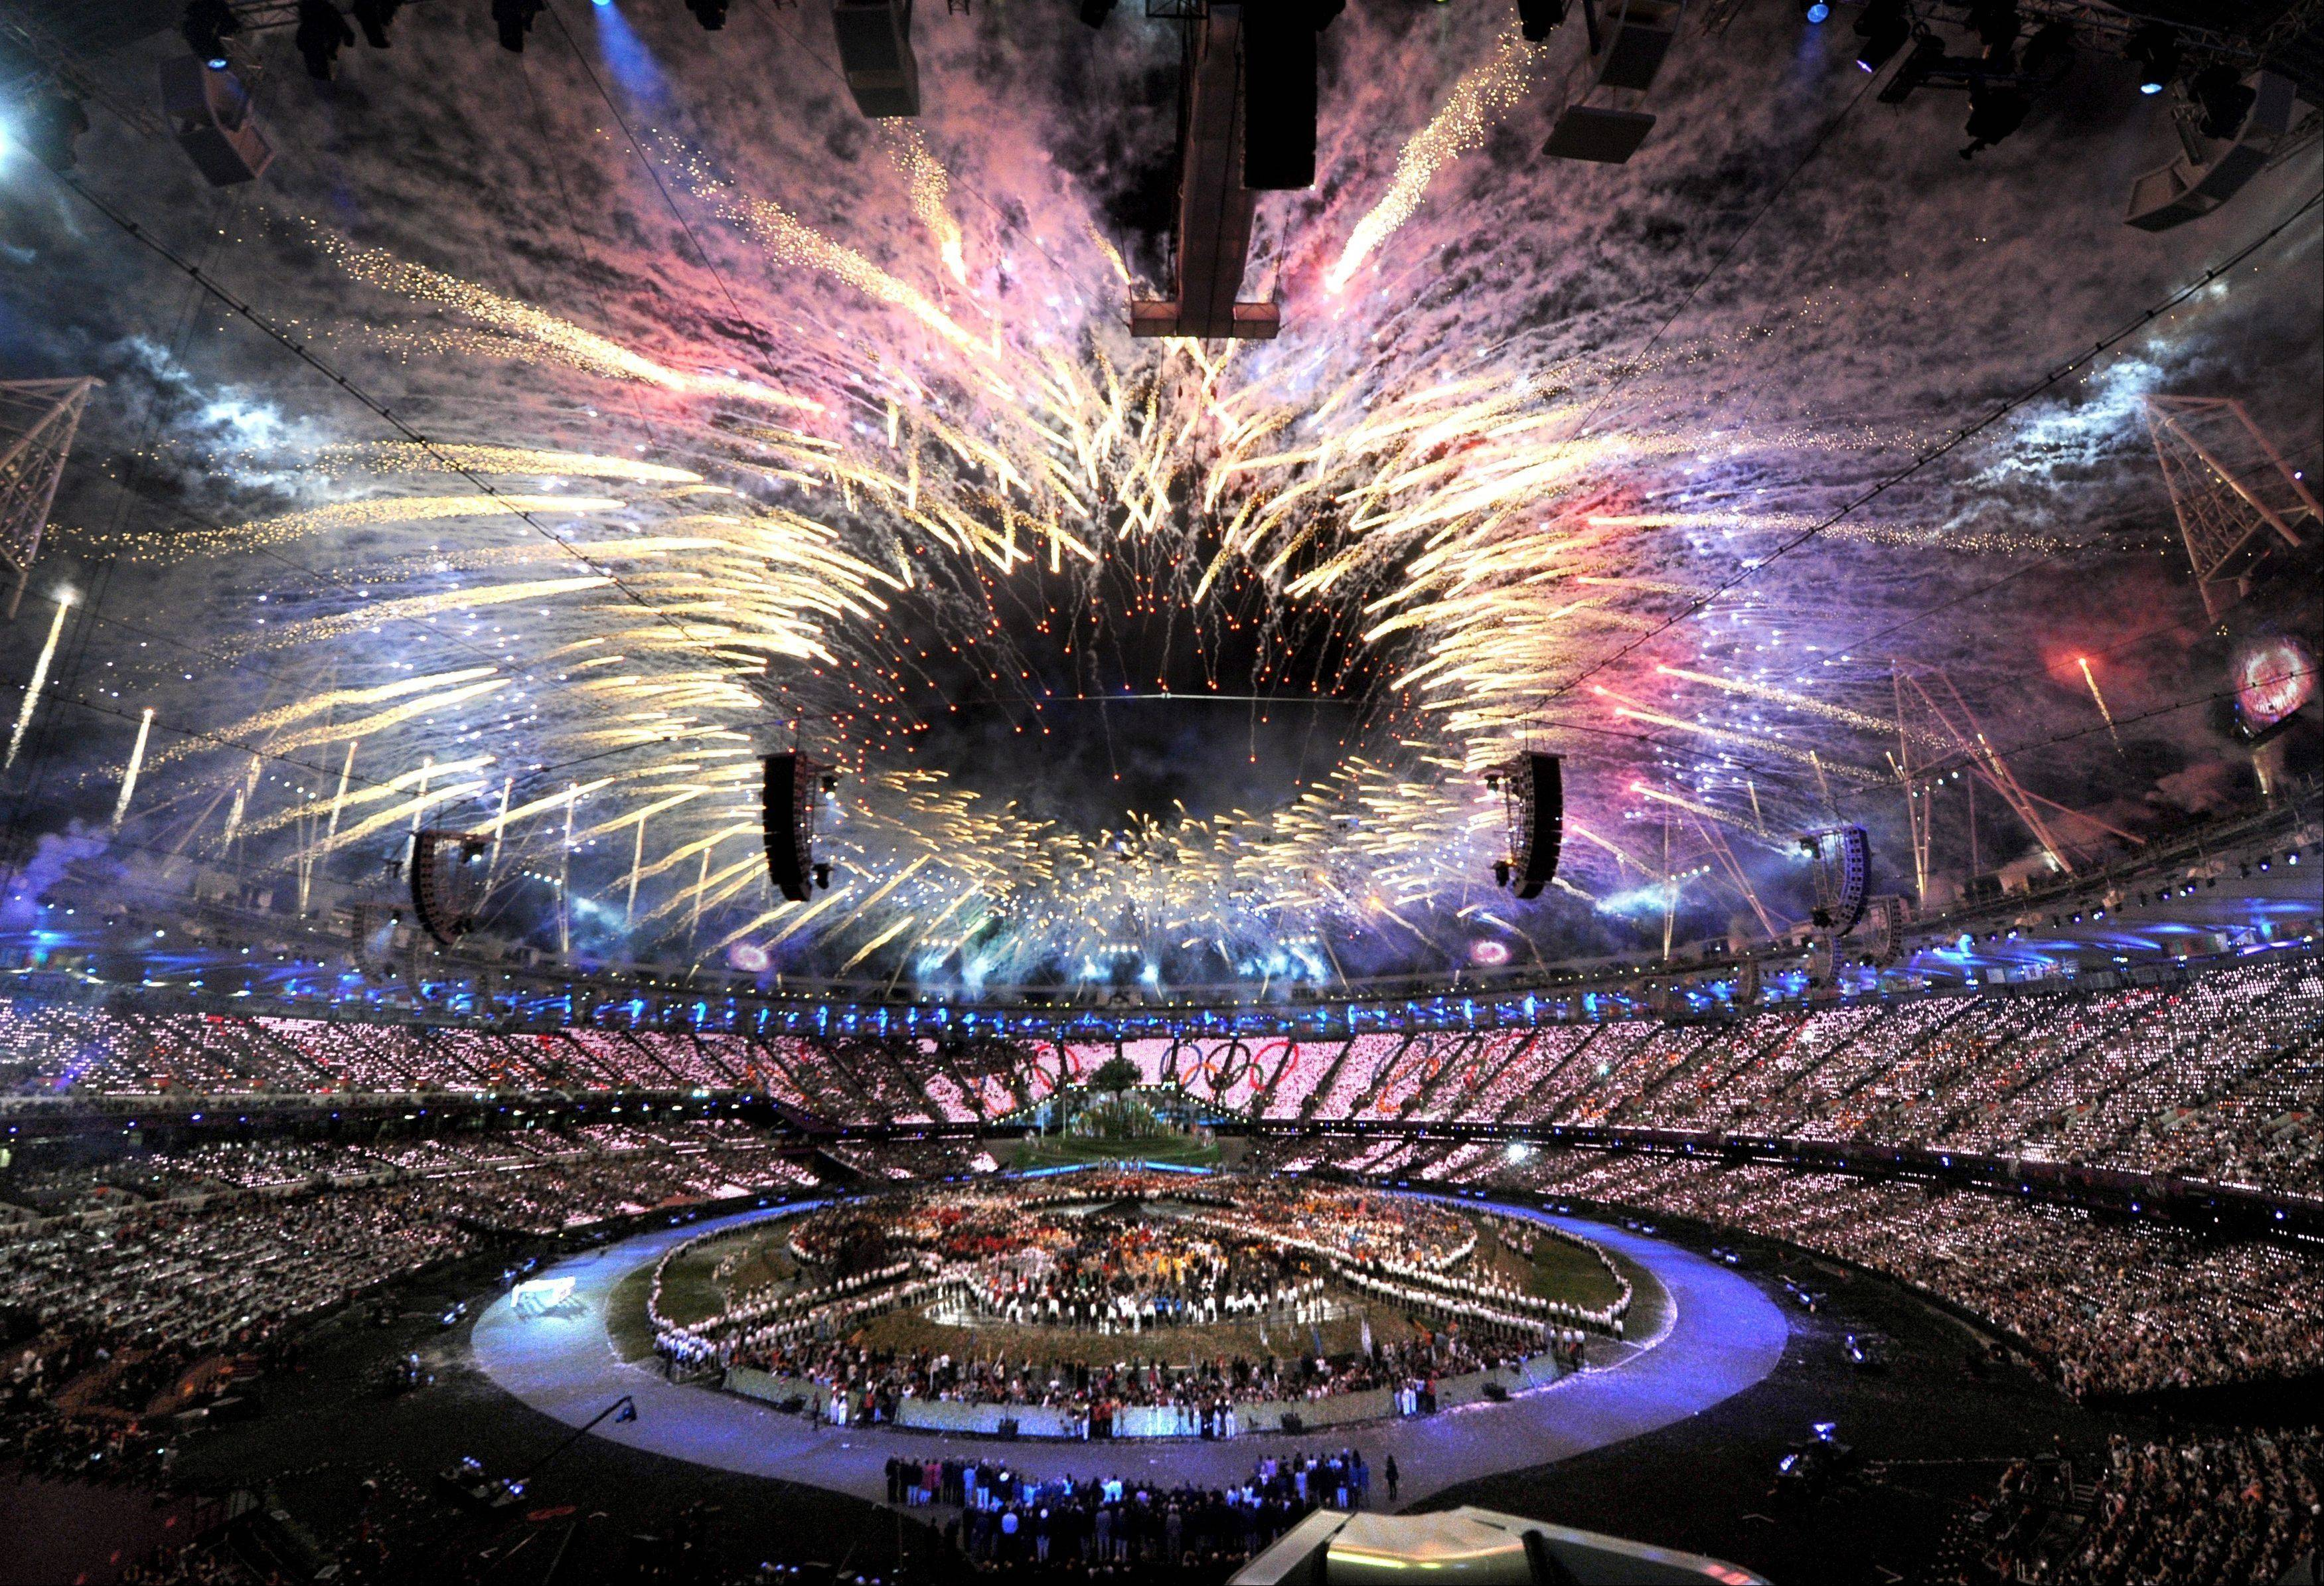 With royalty and rock, Britain opens its Olympics